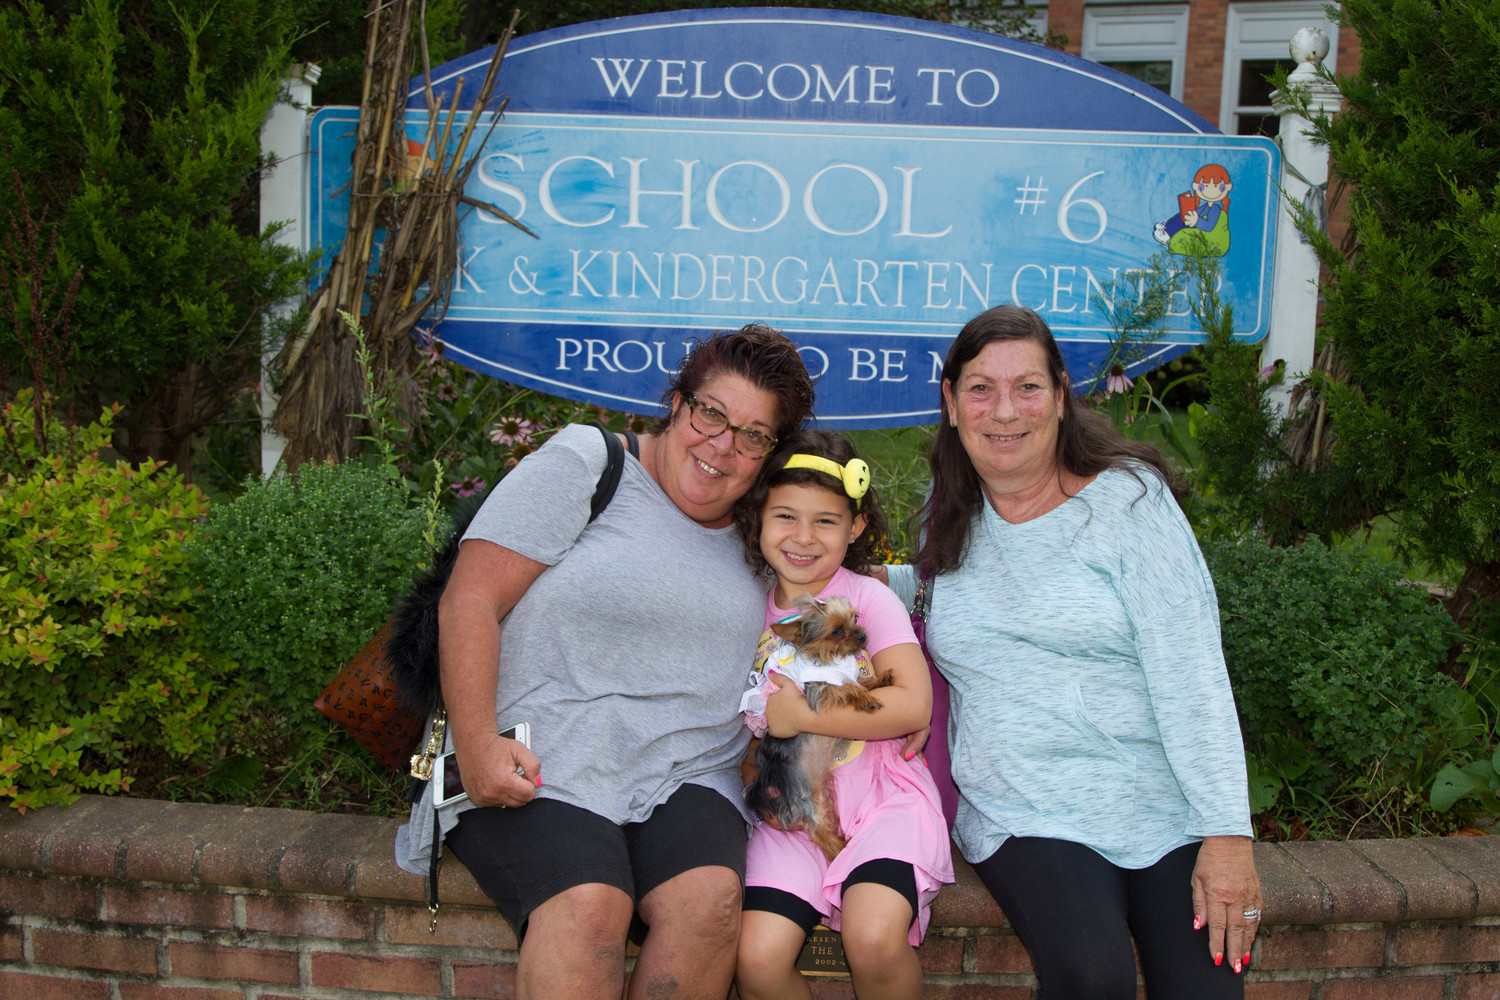 Oliva Gabel, center, brought her dog for the first day of kindergarten, with her were Lori Gabel, left, and Rosanne Krinsky.